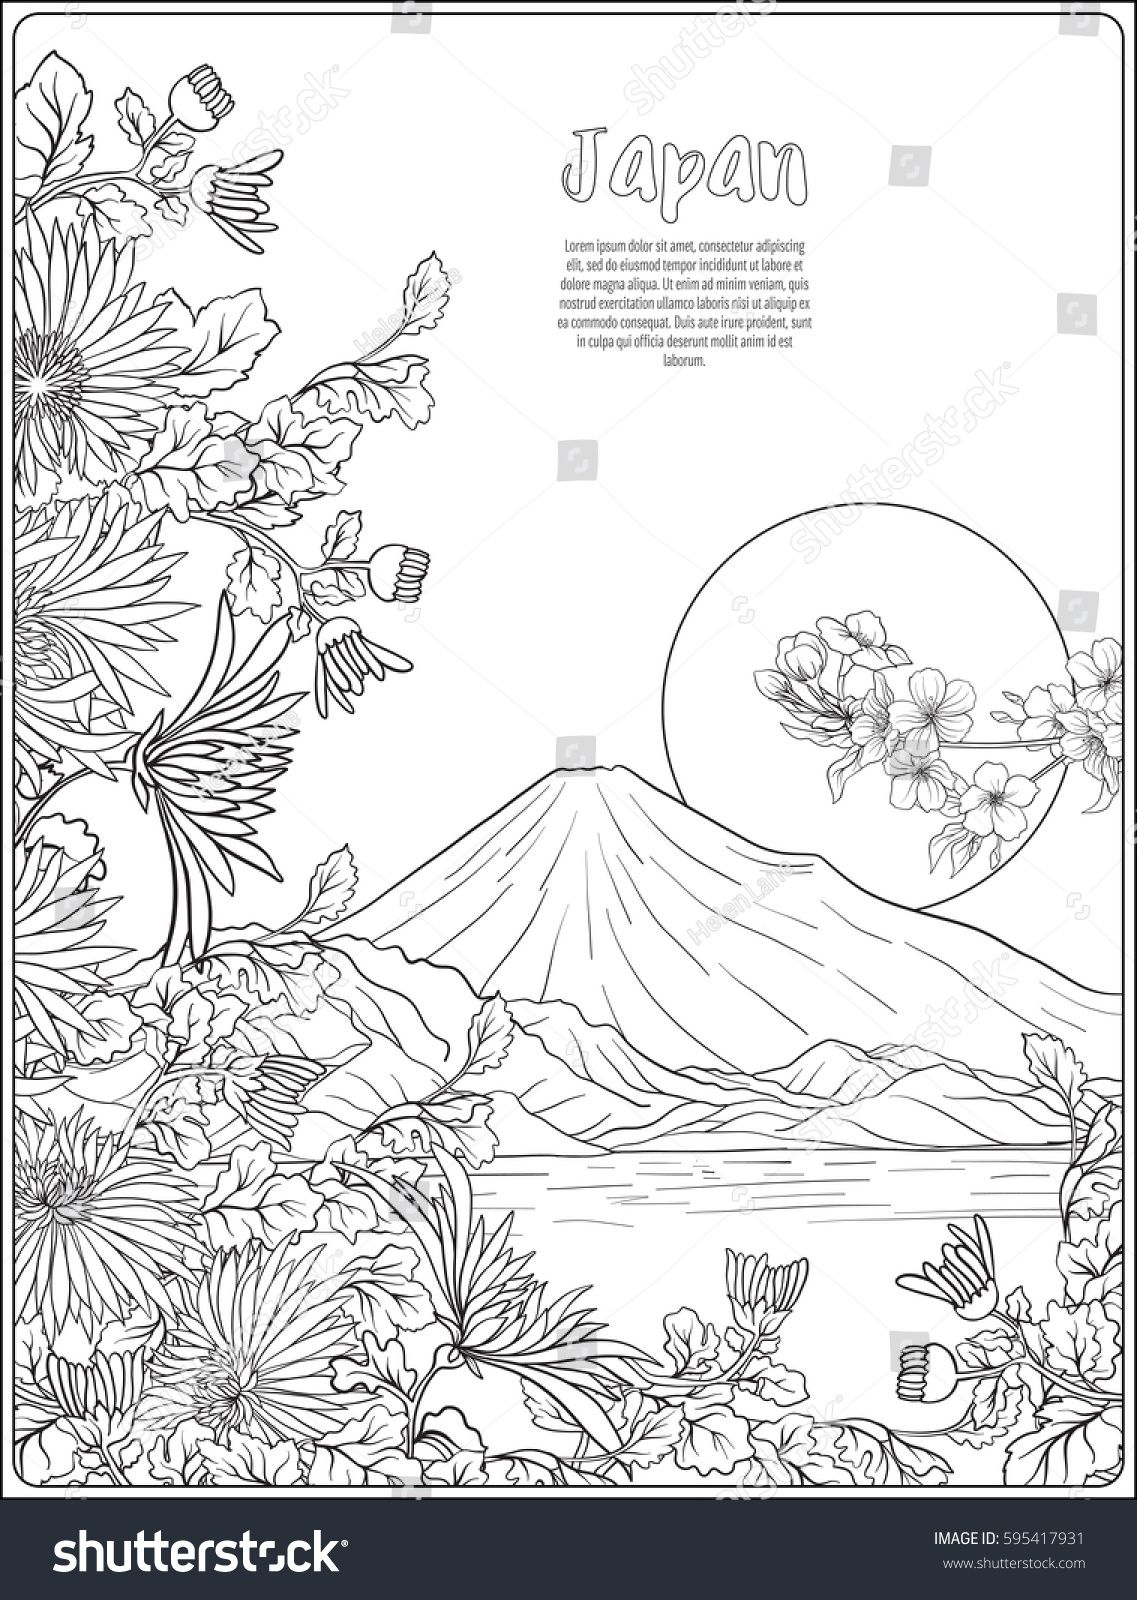 Japanese Landscape With Mount Fuji And Tradition Flowers And A Bird Outline Drawing Coloring Page Color Japanese Drawings Japanese Landscape Outline Drawings